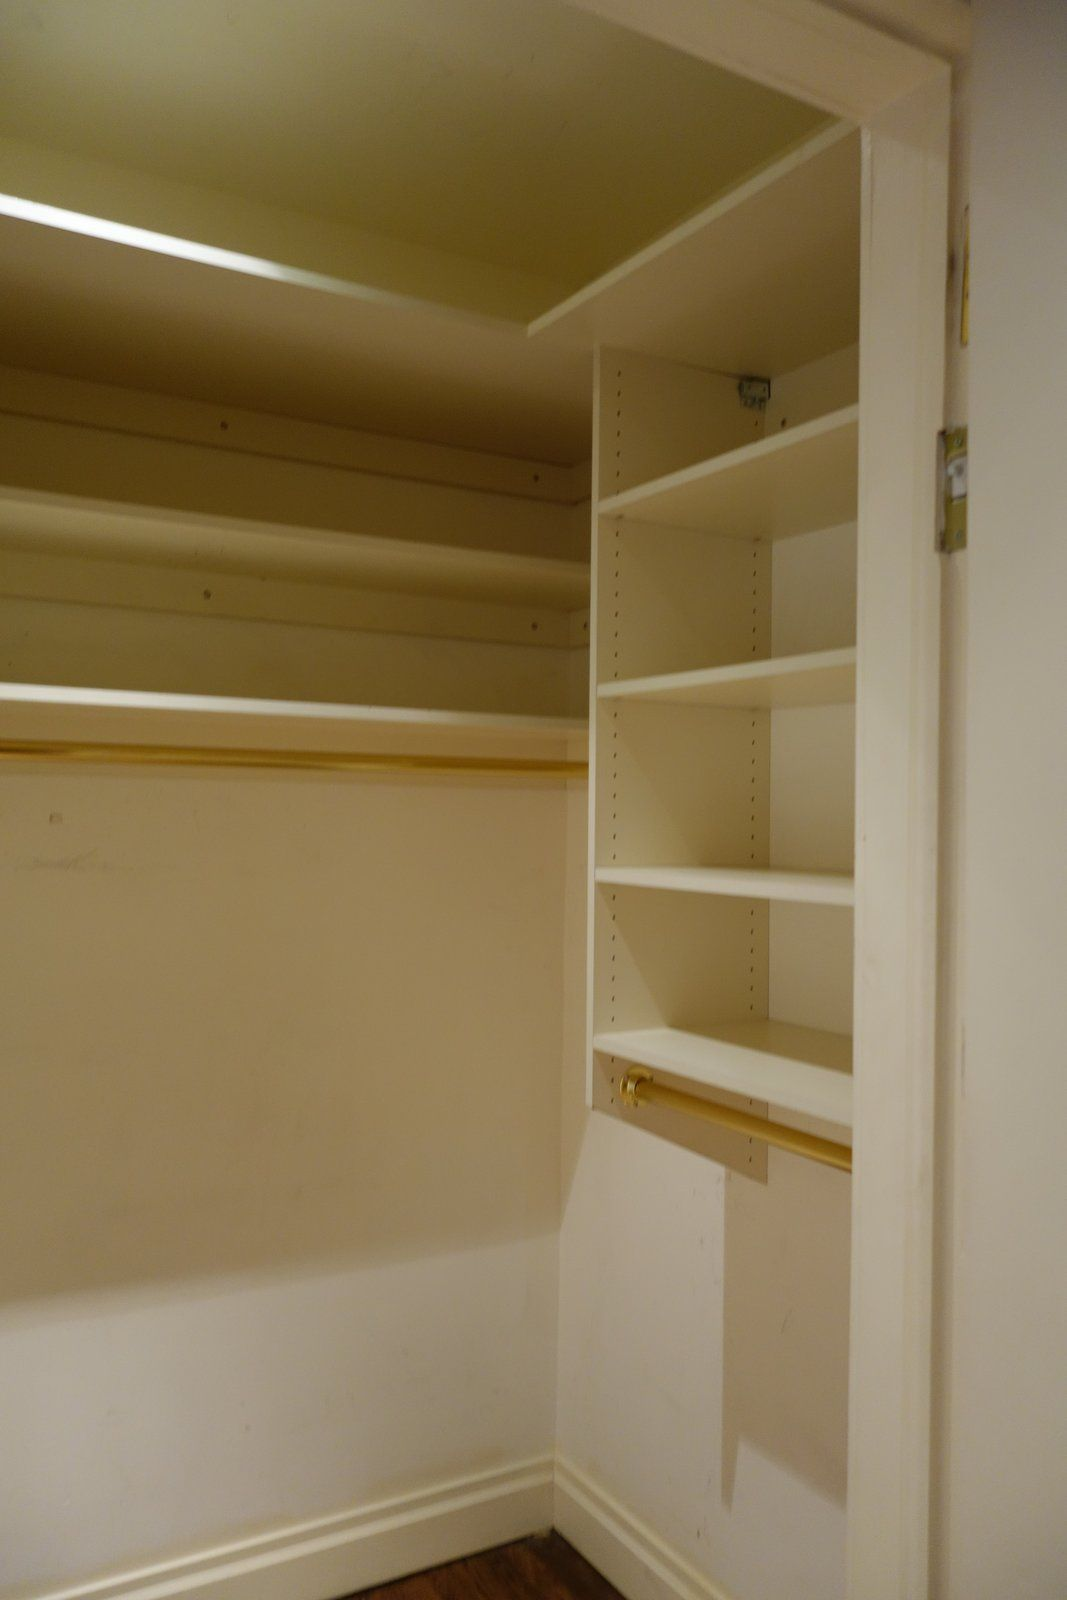 Other sections of the apartment have also been repurposed, like this closet space for example